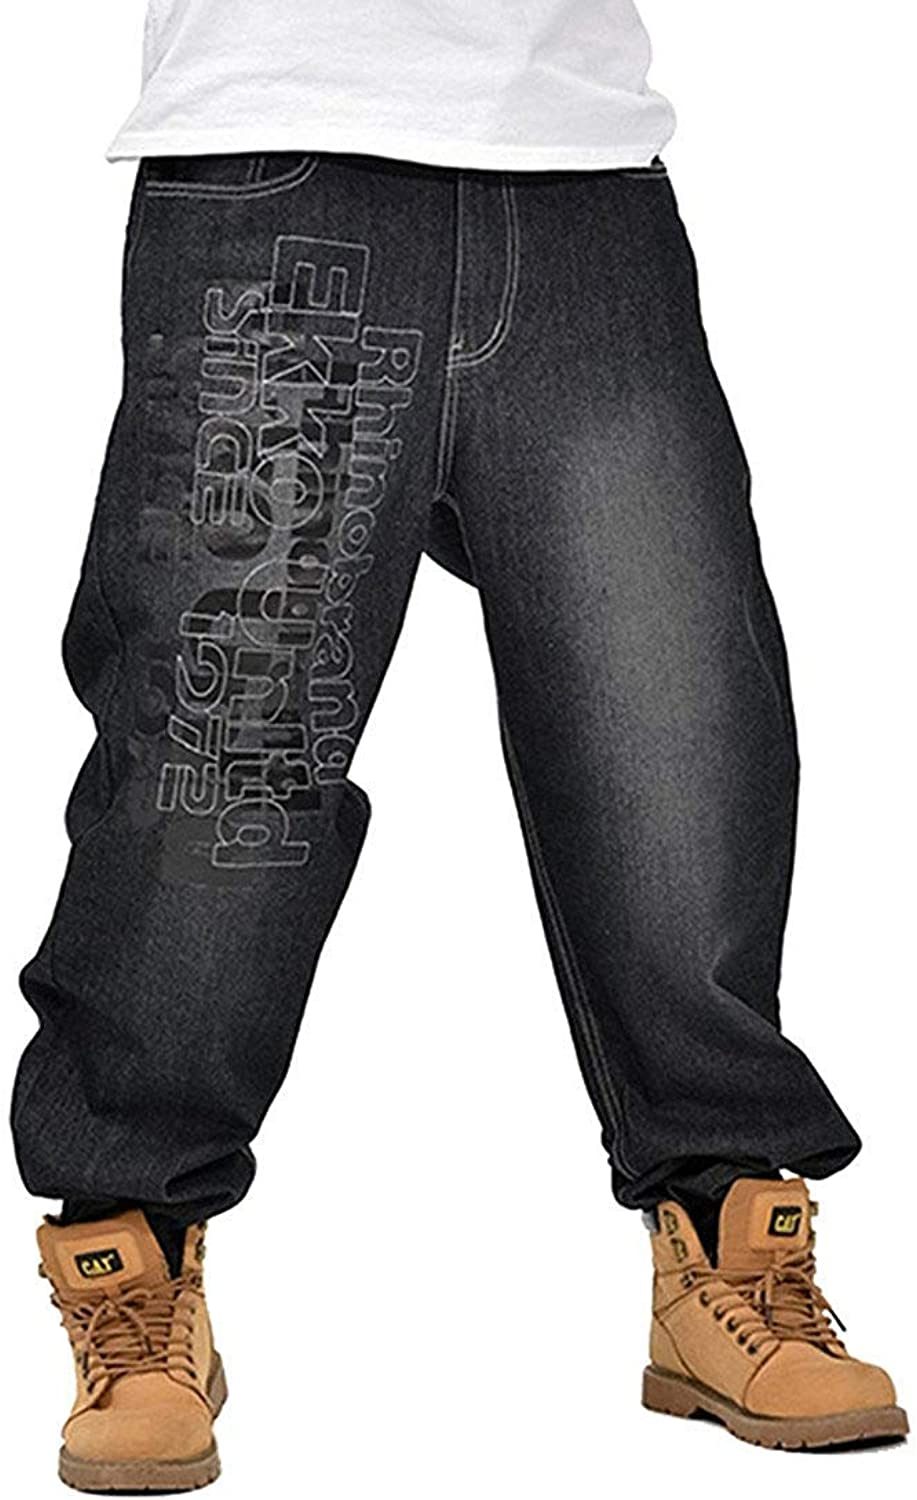 d368f887430d5 Pit4tk Hip Hop Embroidery Jeans Denim Pants Baggy Men's osmyhp4650 ...